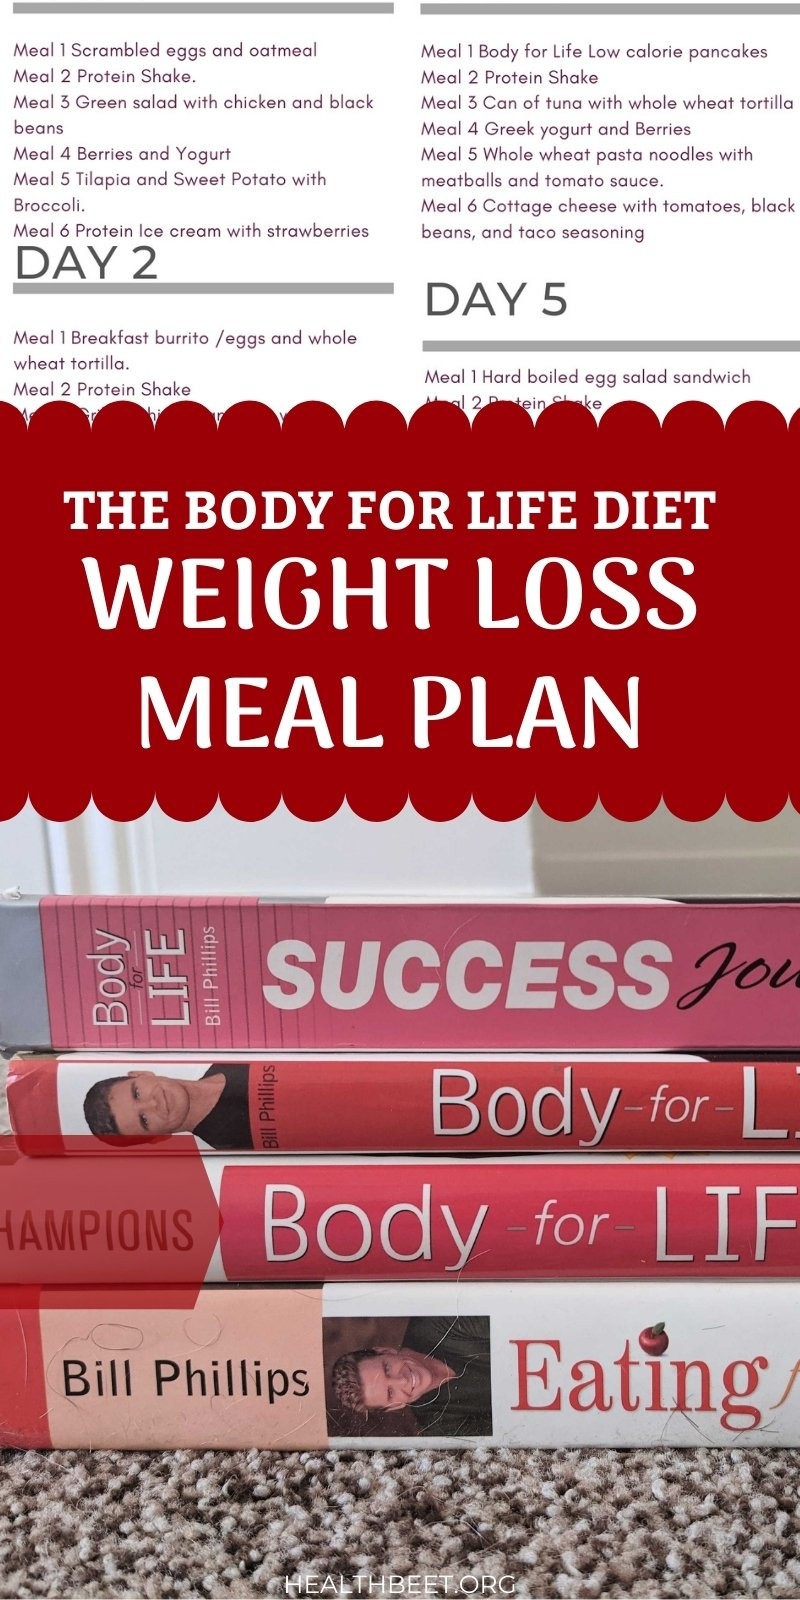 Everything you need to know about the Body for Life Diet, history, program guidelines and a 7 day meal plan